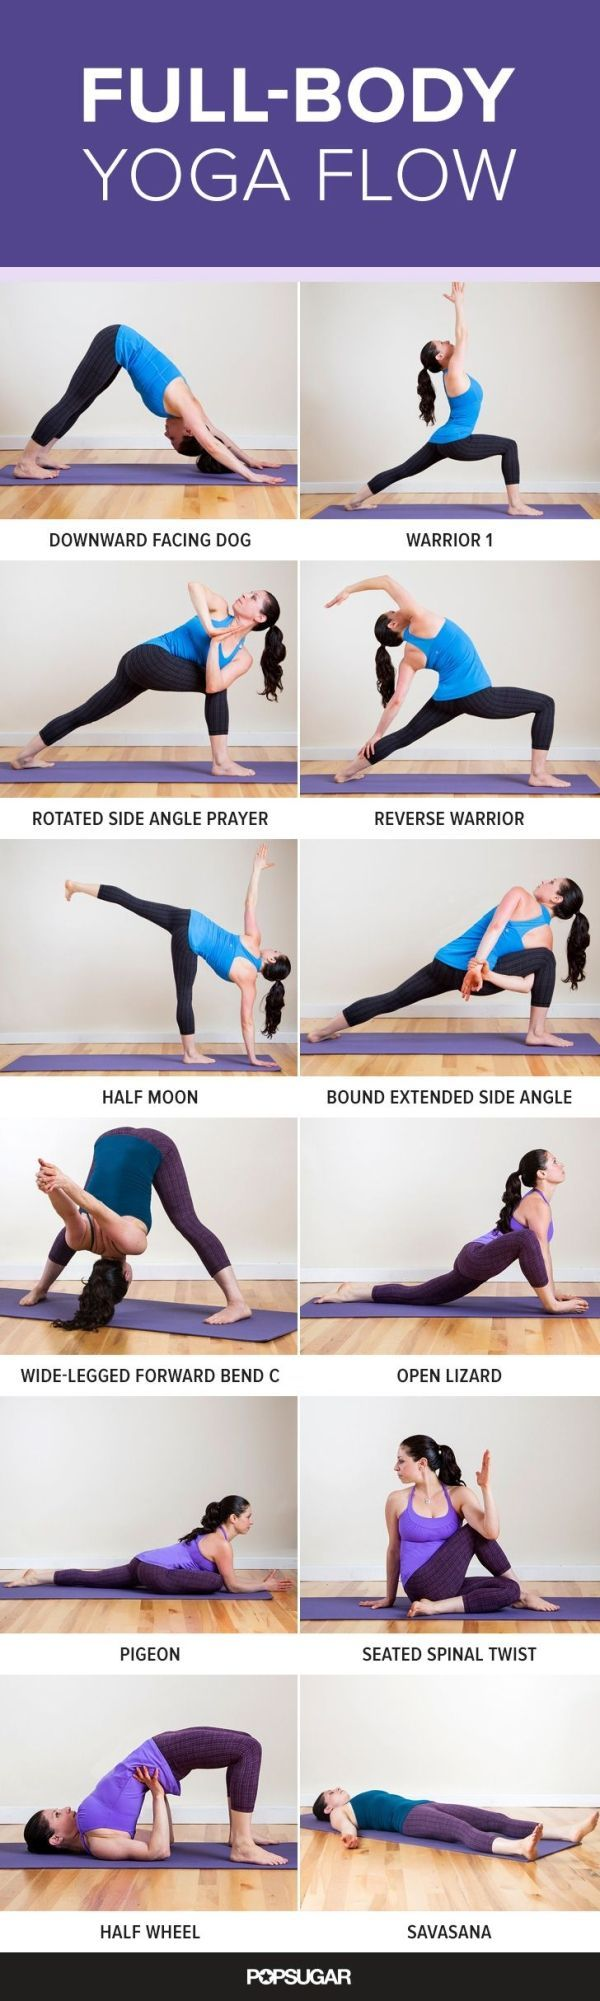 Use These Pinterest Workouts for Your Next Home-Based Routine #pilatesposes